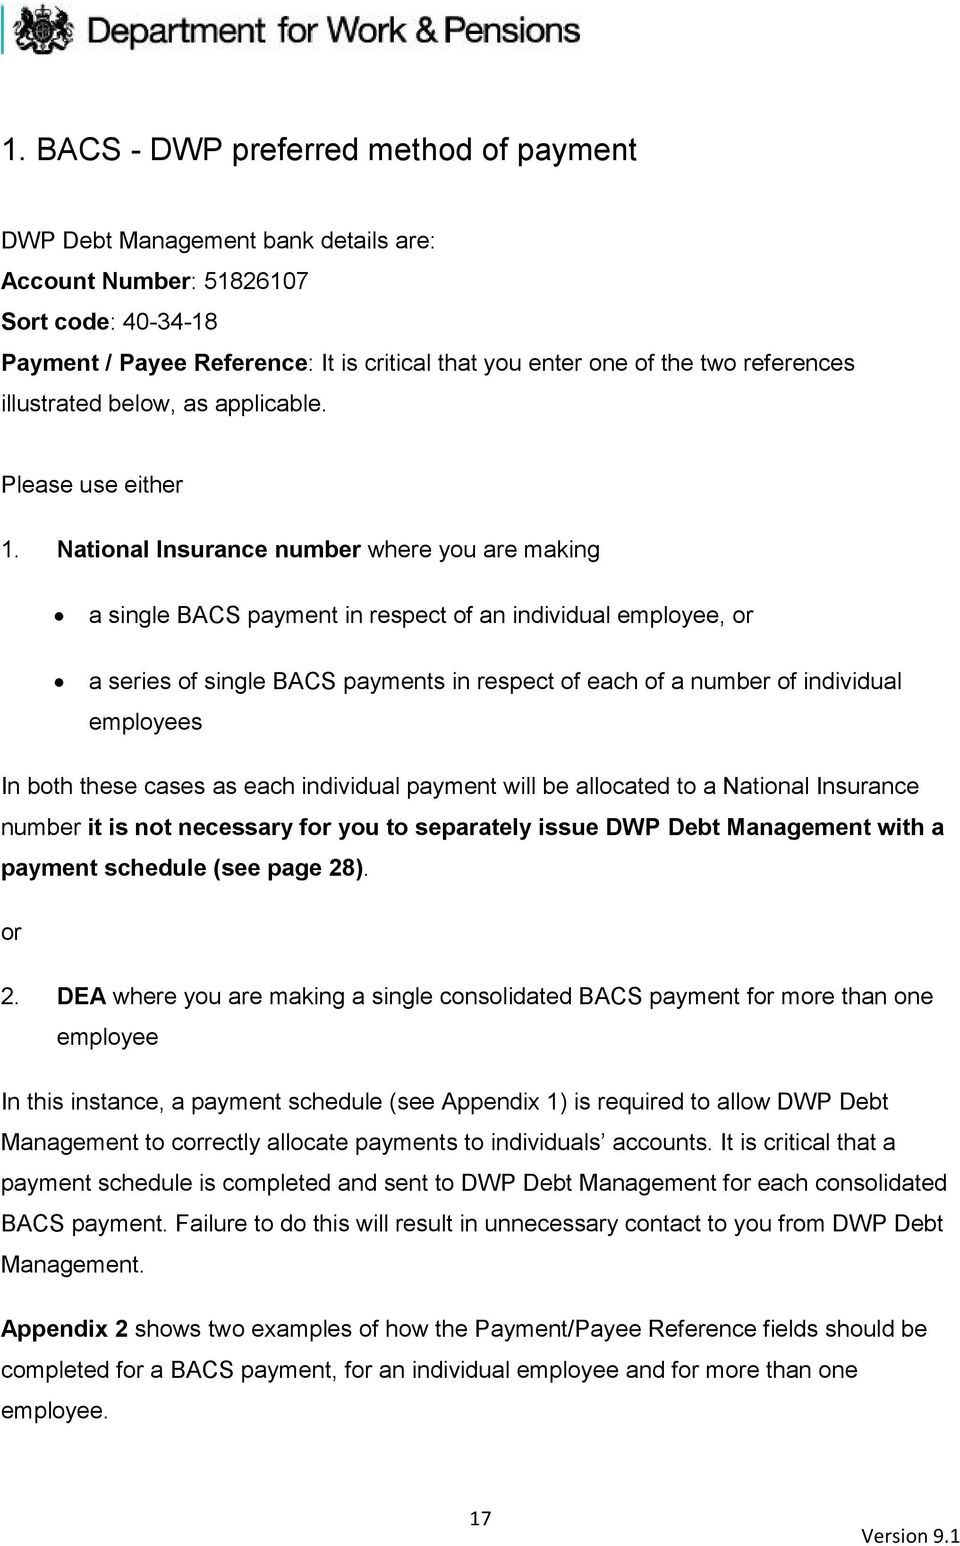 National Insurance number where you are making a single BACS payment in respect of an individual employee, or a series of single BACS payments in respect of each of a number of individual employees